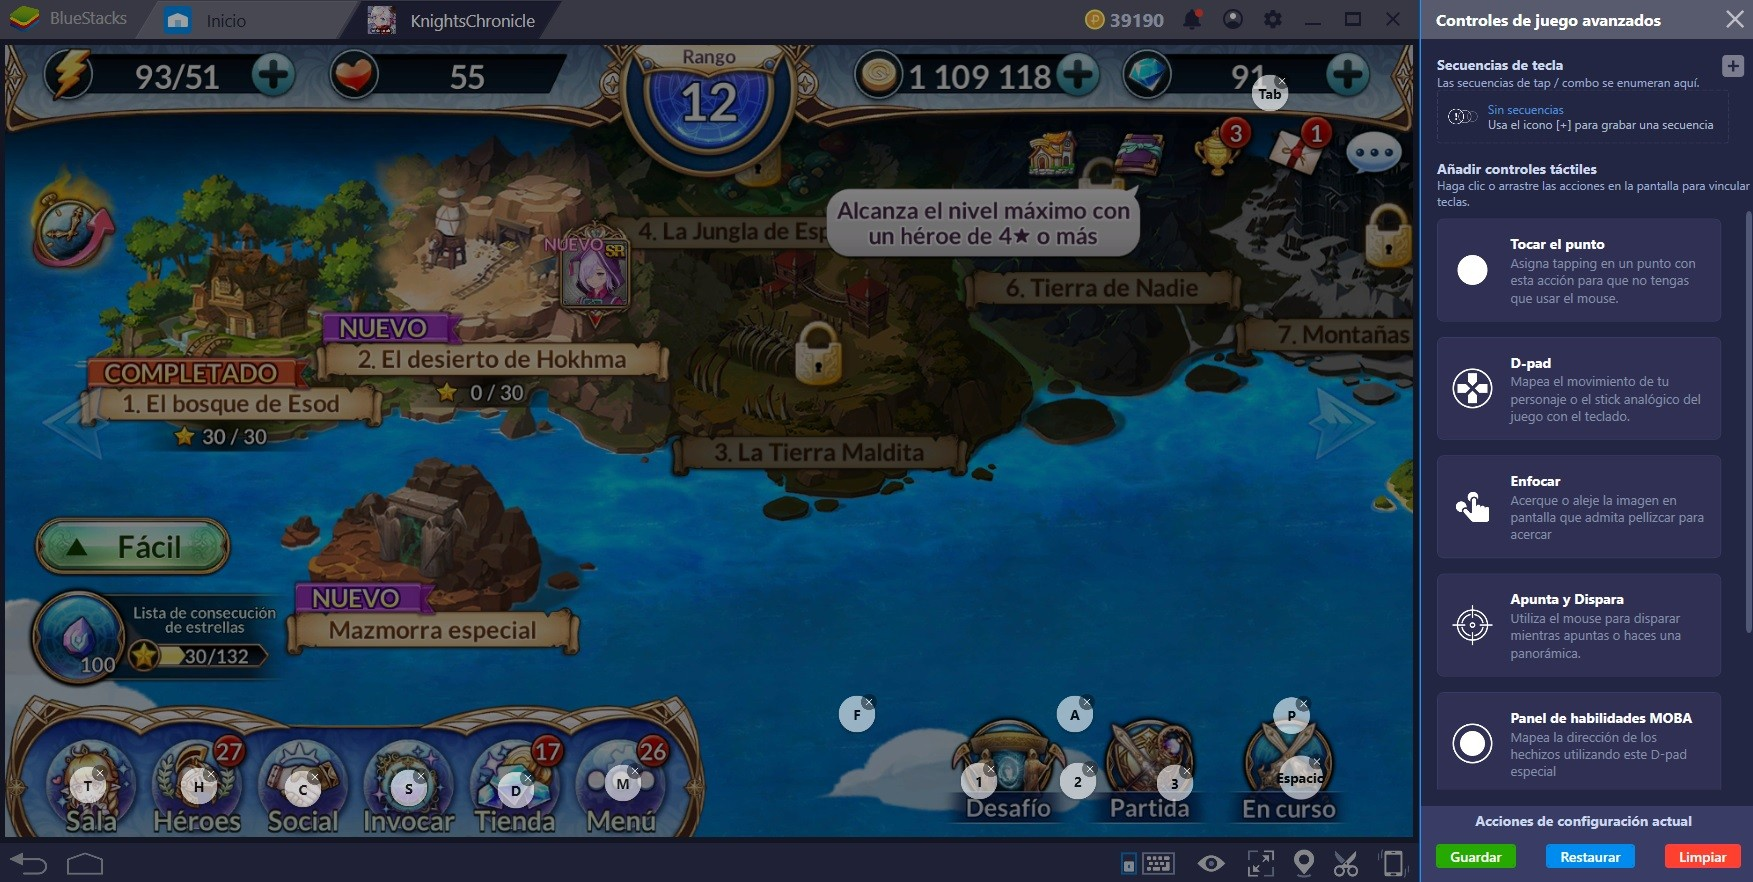 Cómo Acelerar tu Proceso en Knights Chronicle Usando BlueStacks